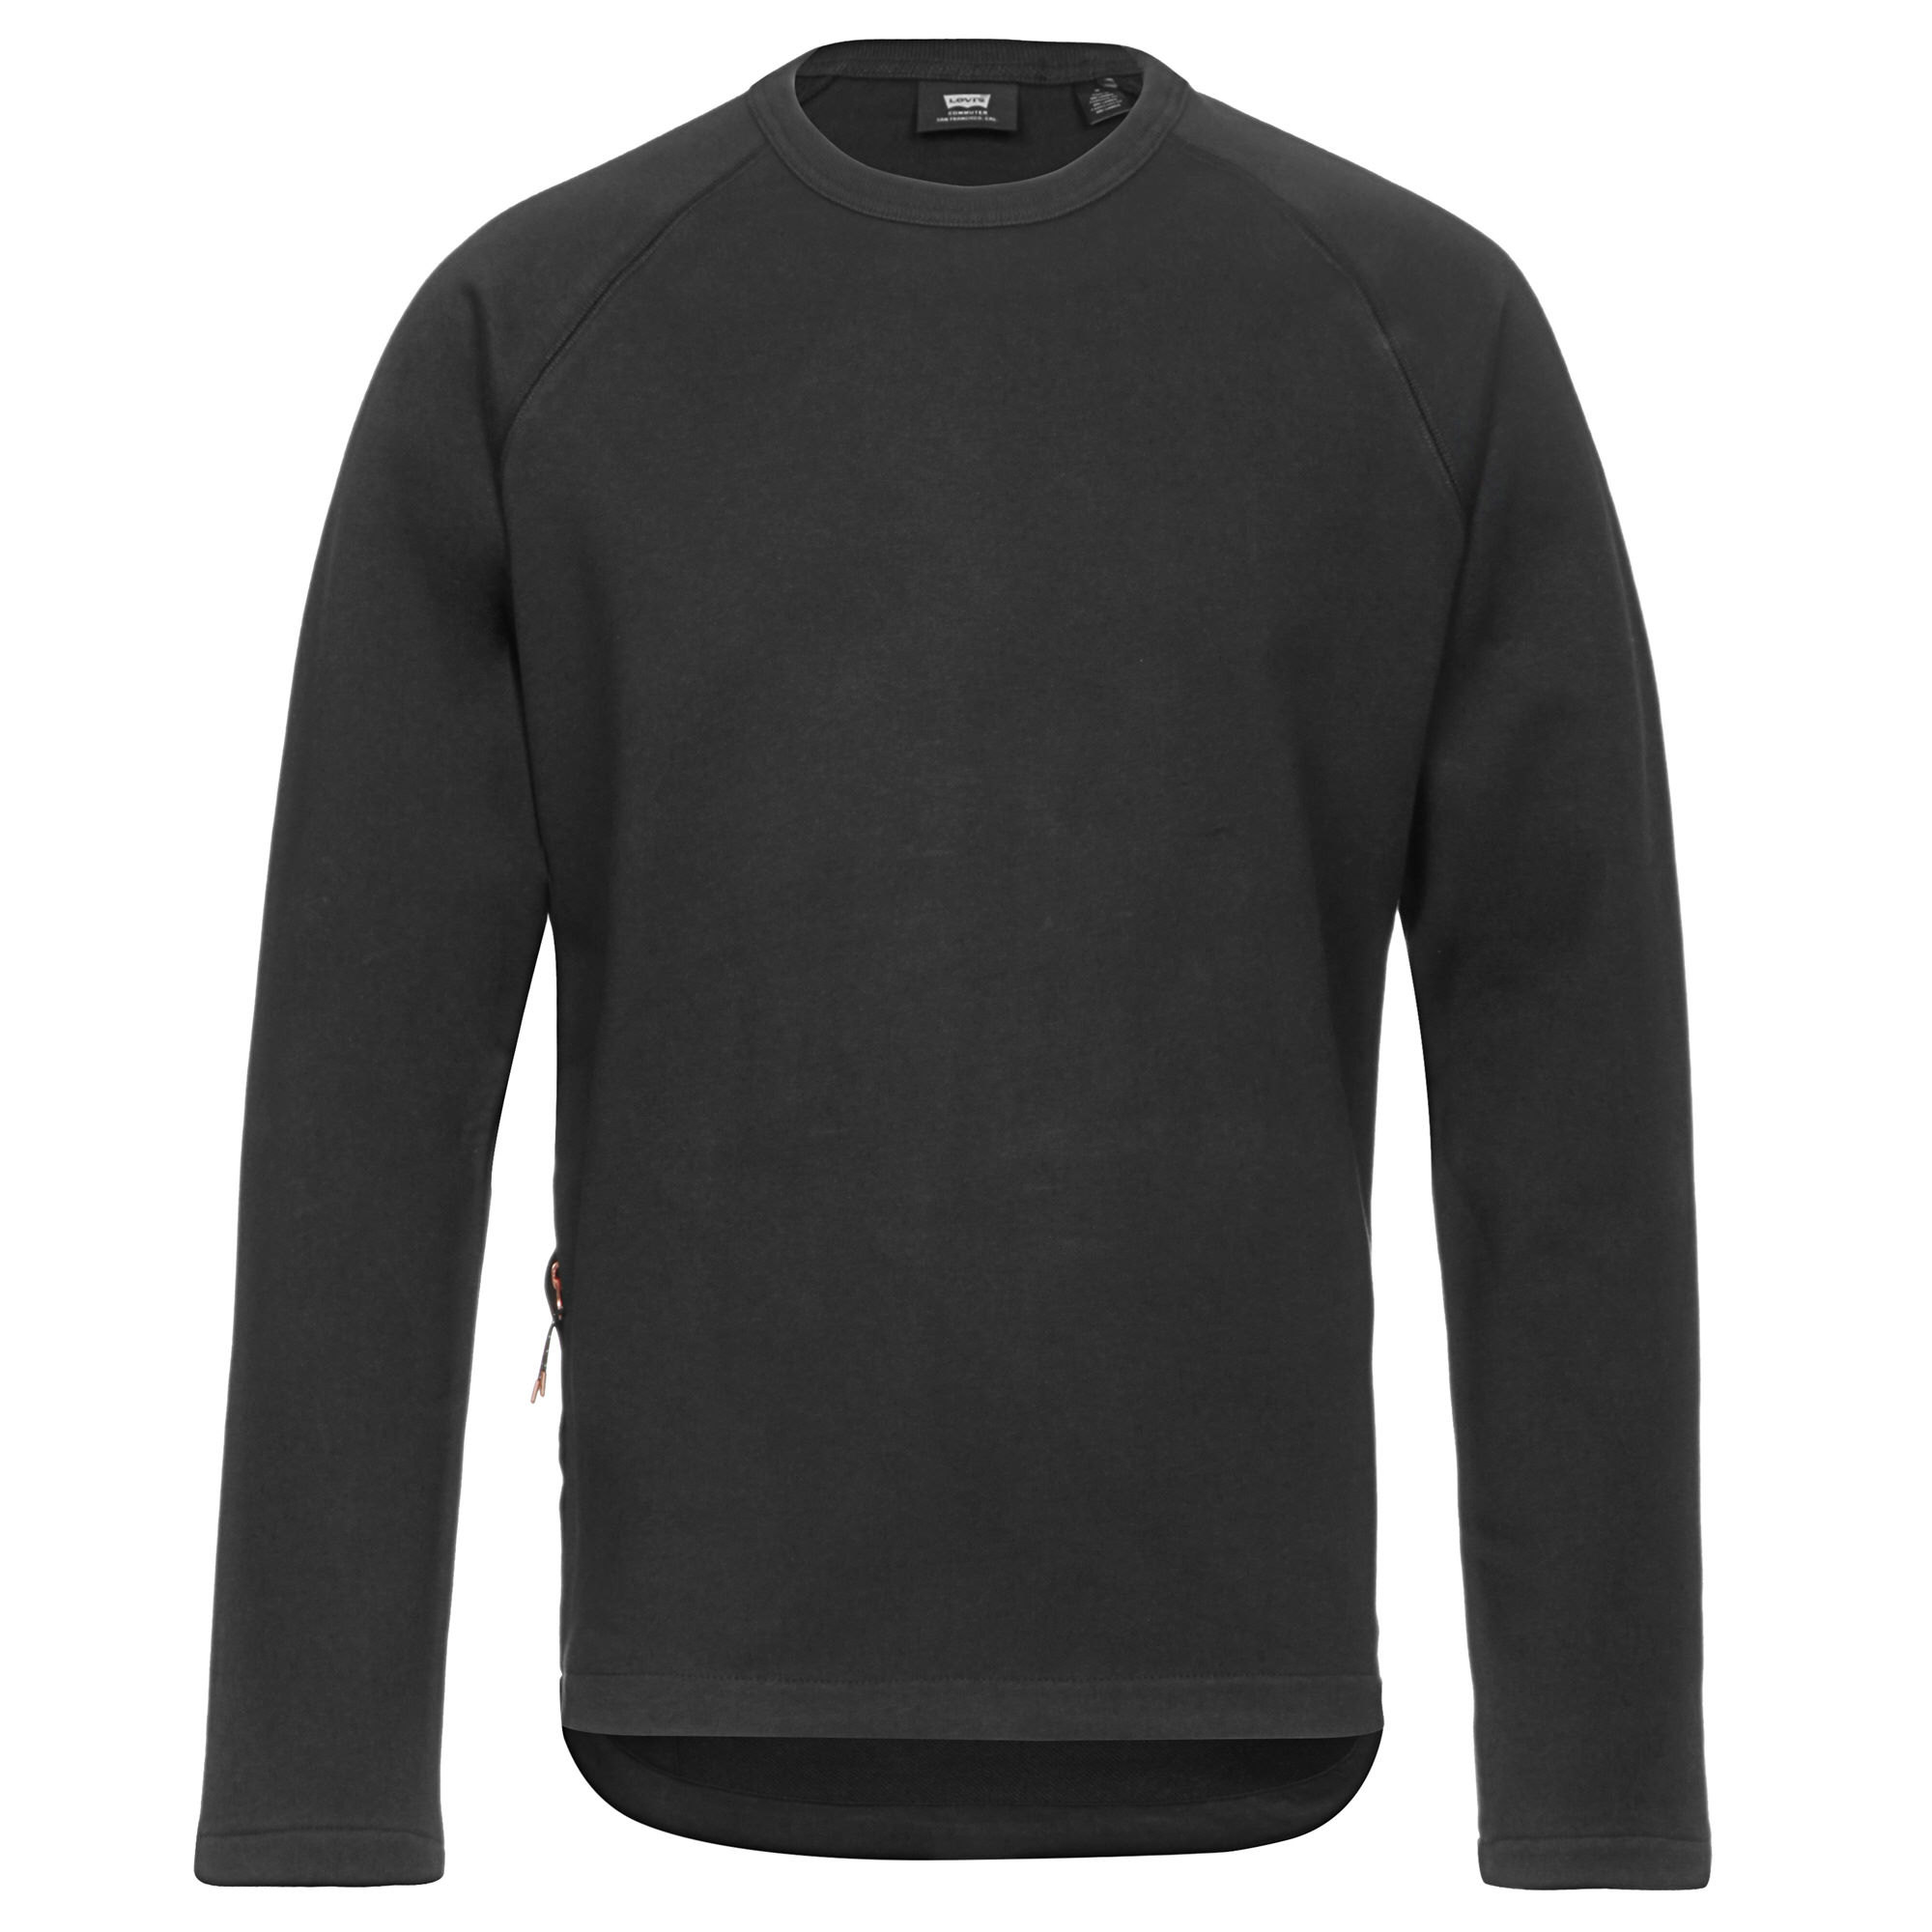 Wiggle levi 39 s commuter long sleeve tee t shirts for Long sleeve black tee shirts